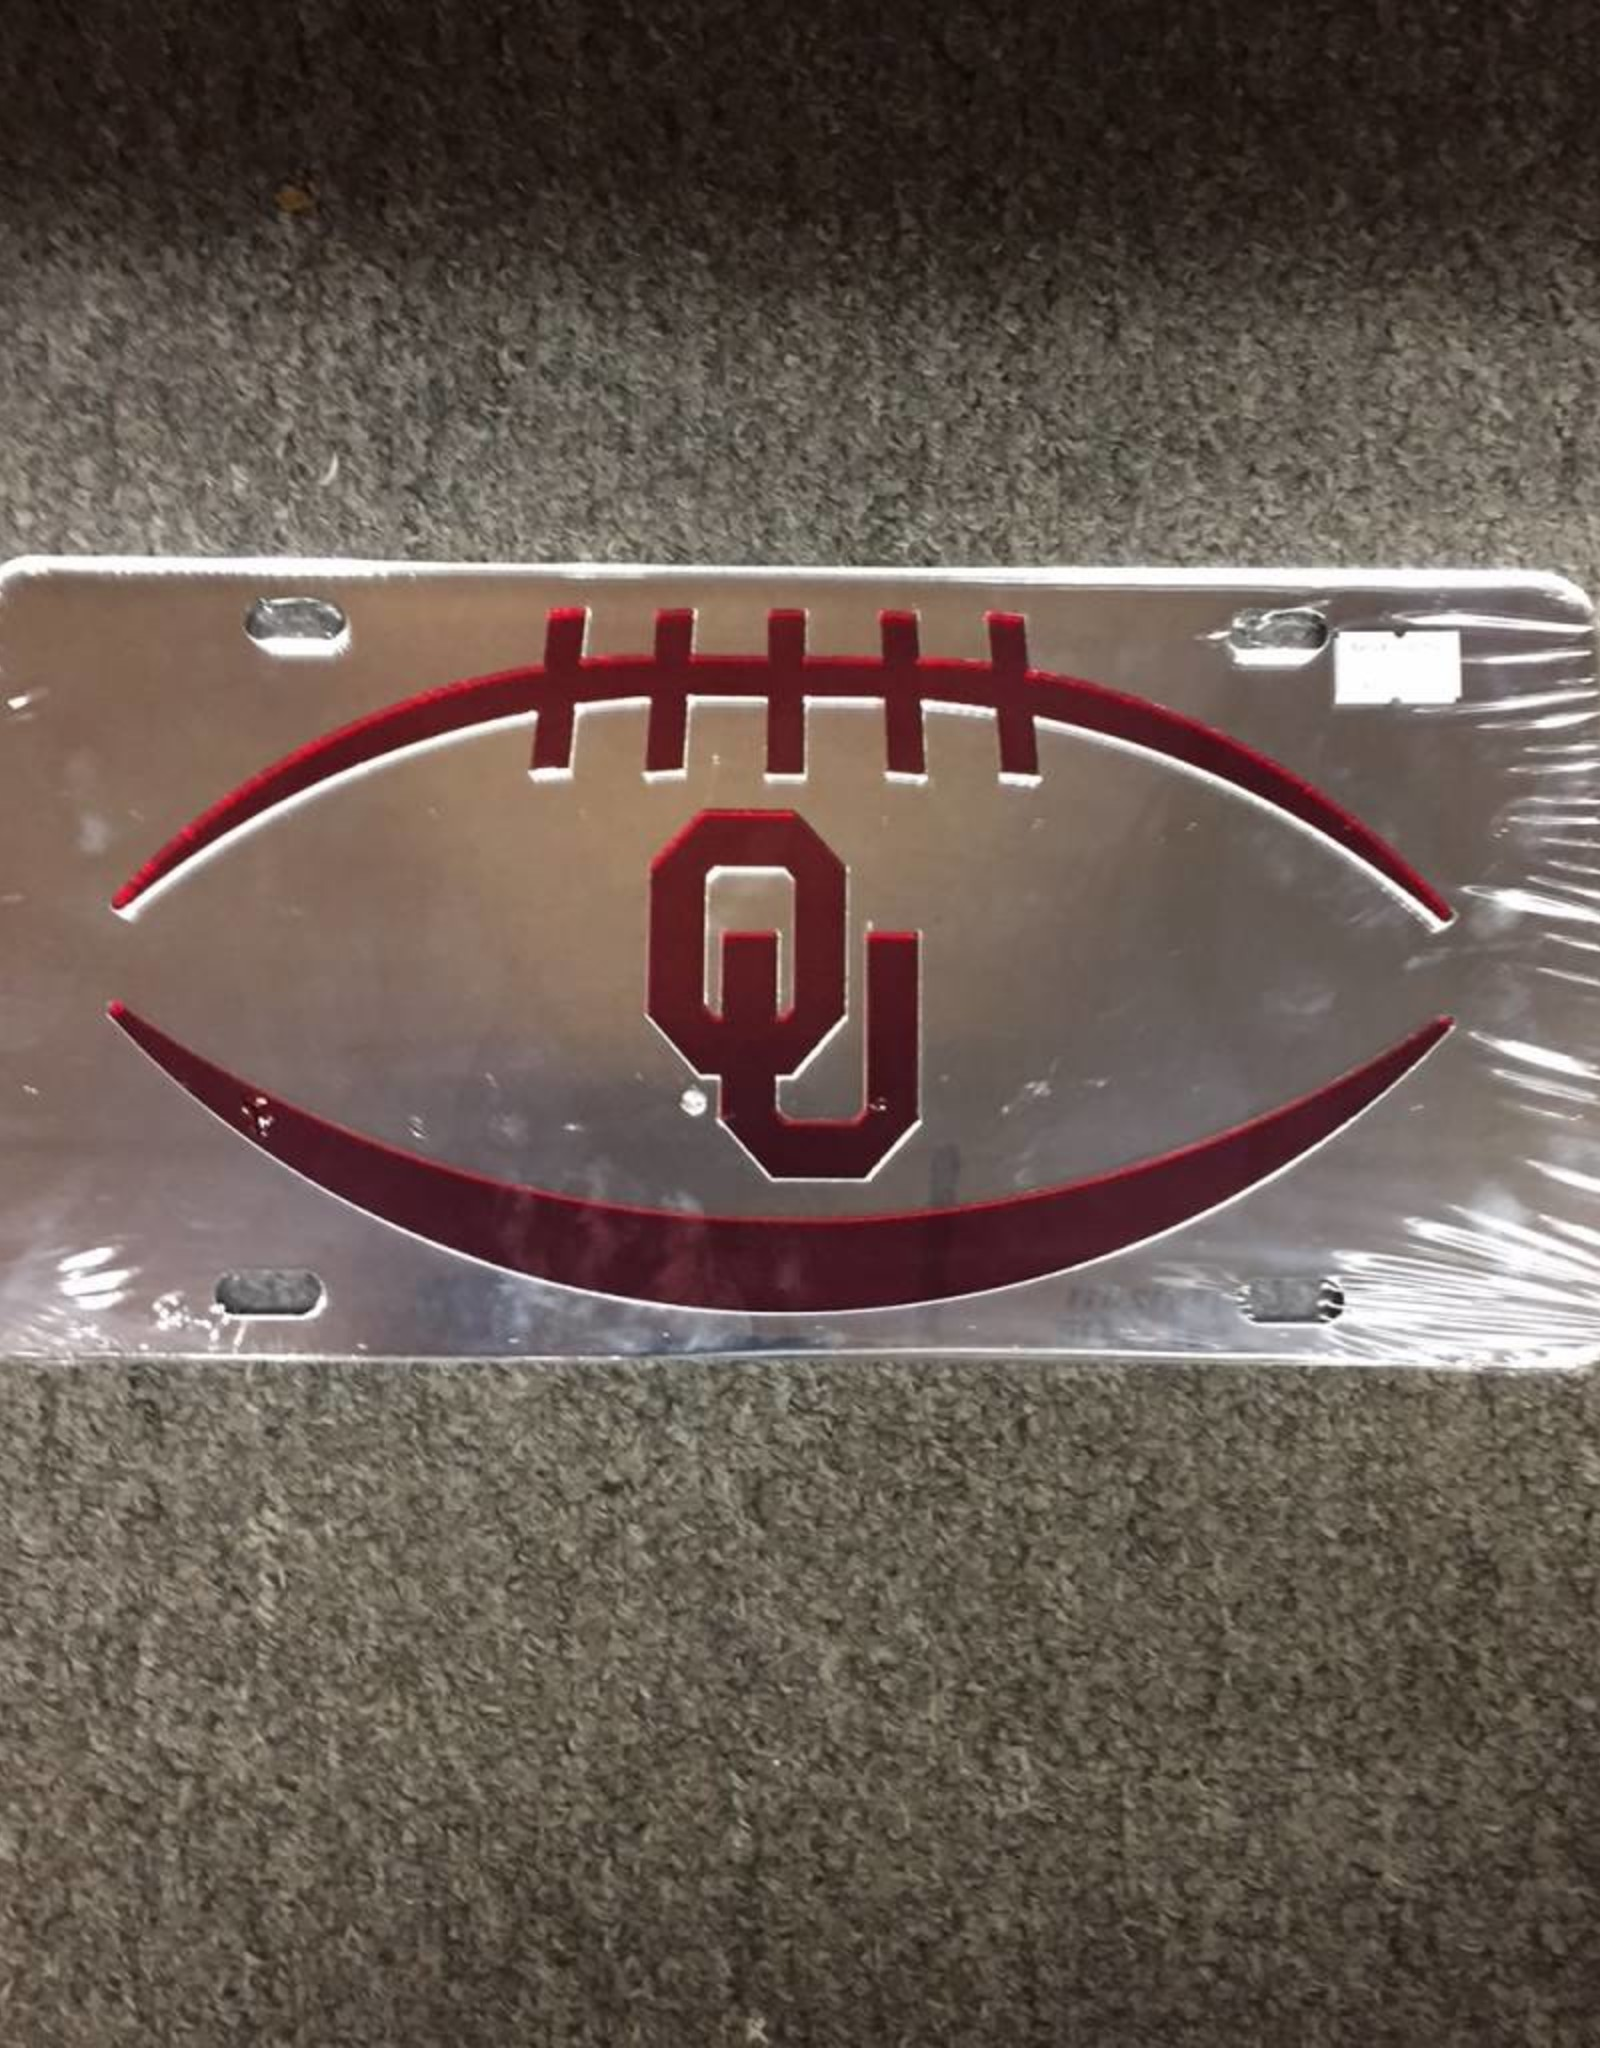 Craftique Craftique OU Football Icon Crimson/Silver Mirrored License Plate